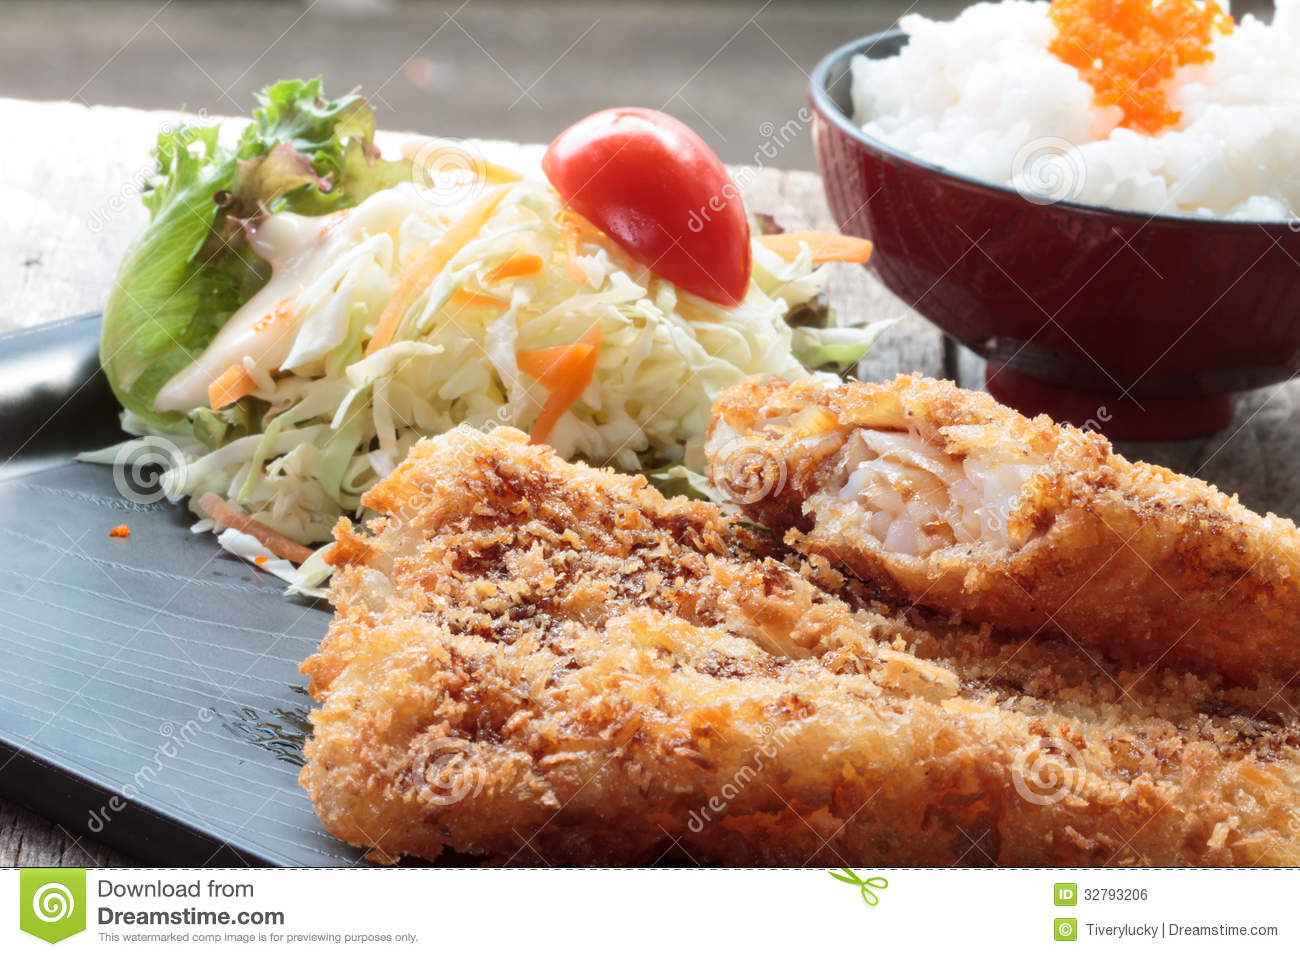 Fried fish and salad royalty free stock image image for Fish and salad